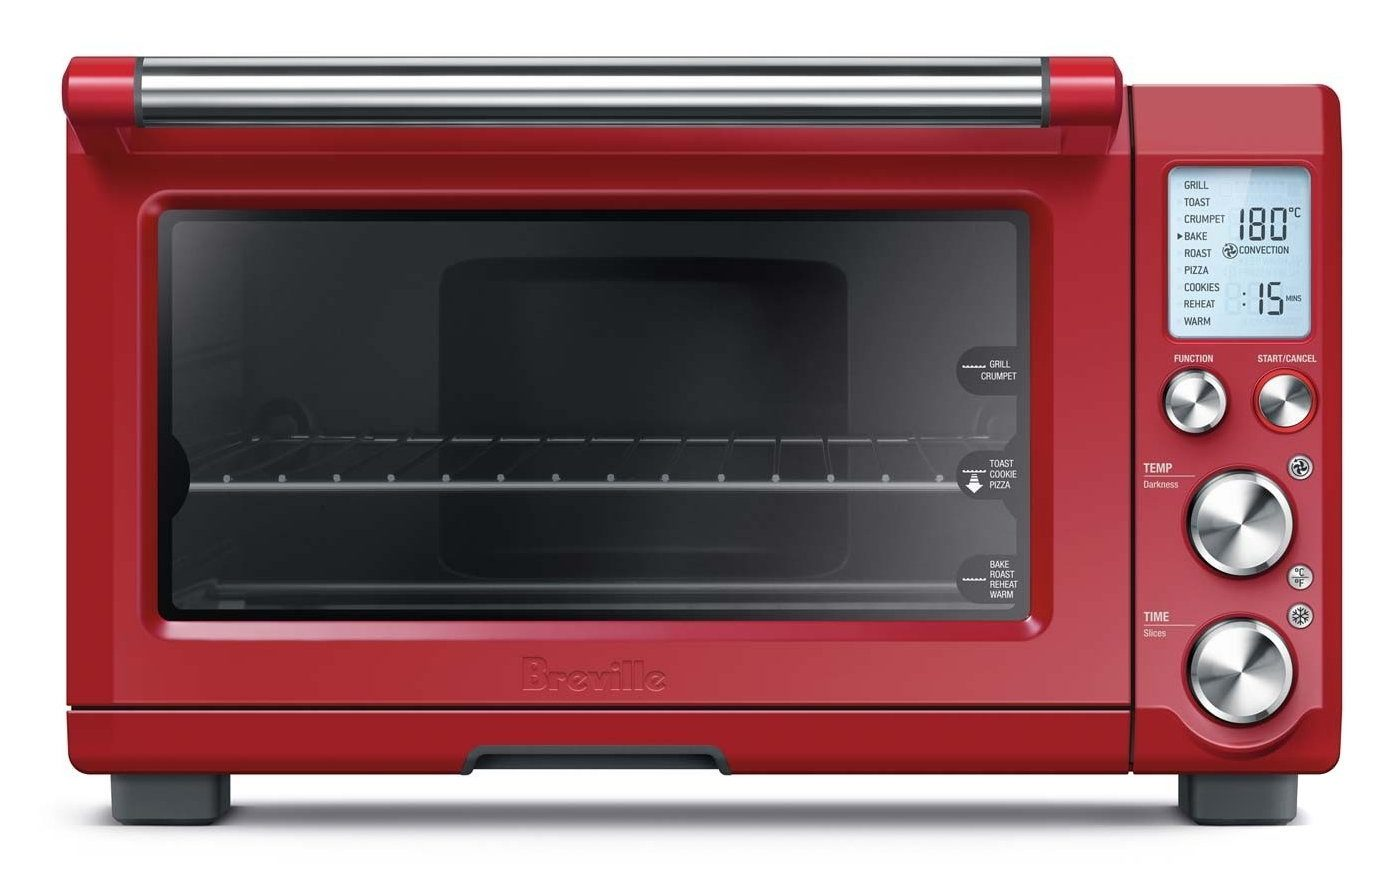 Red toaster oven reviews which is the best model to buy for Breville toaster oven